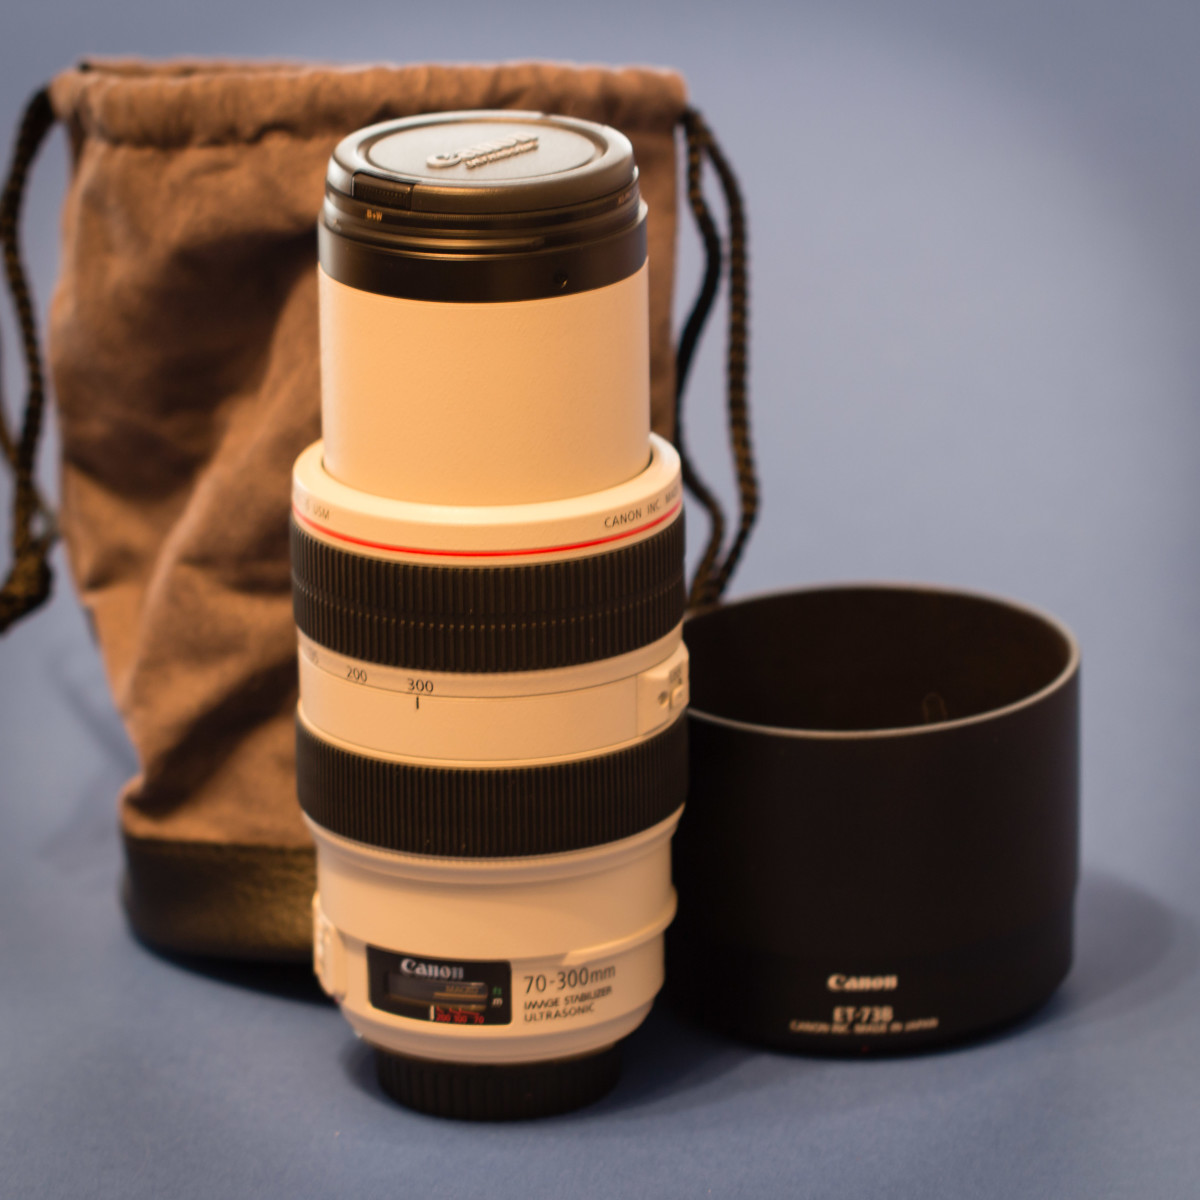 The soft lens case that comes with many lenses is definitely not good for safe transport.